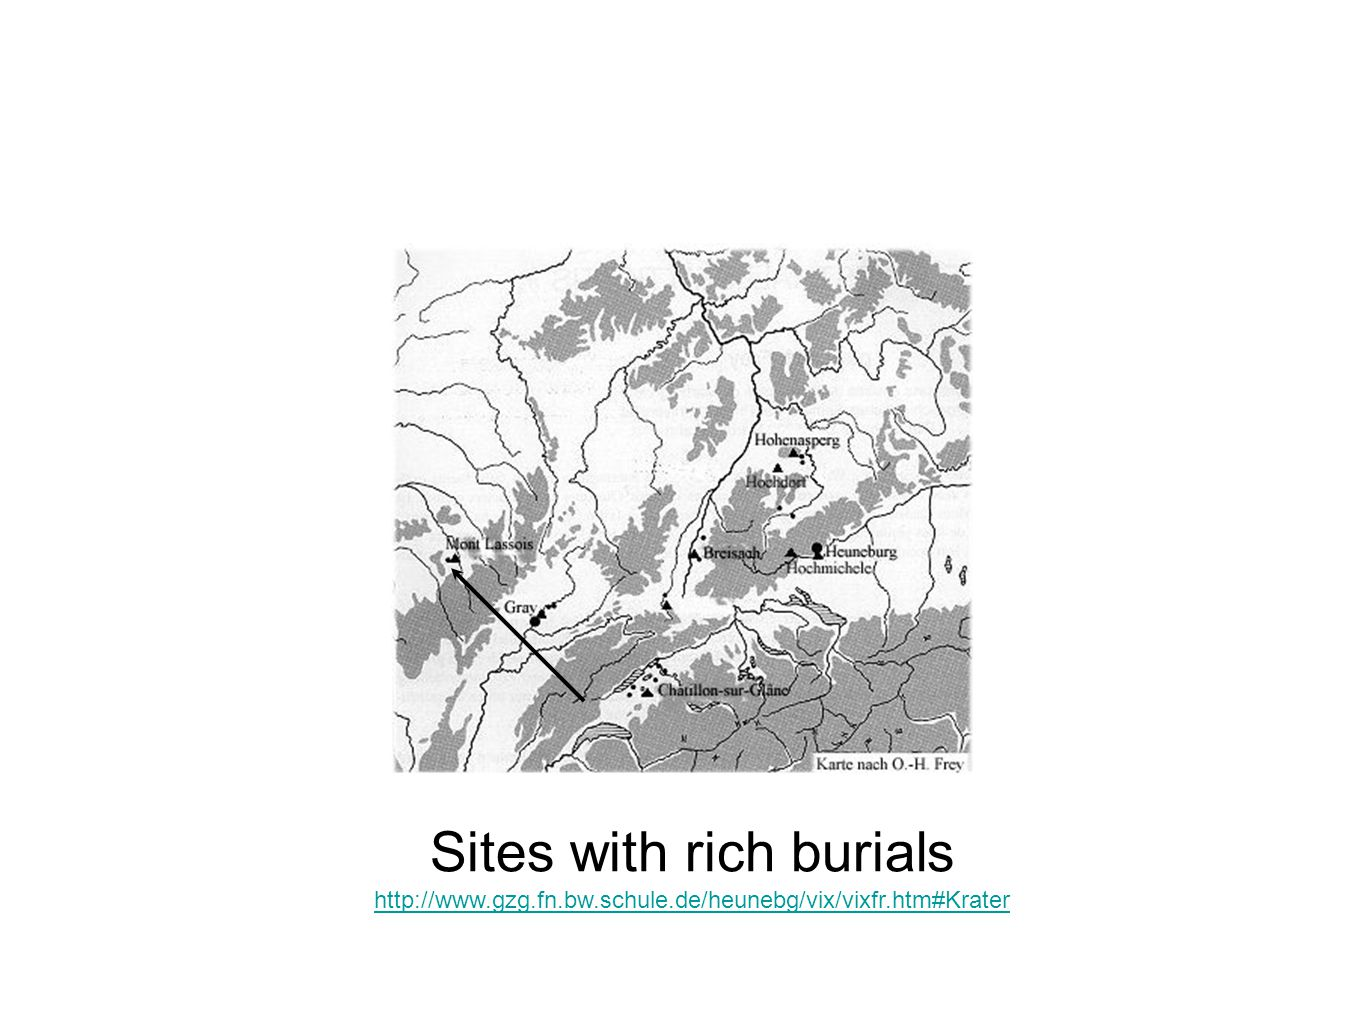 Sites with rich burials